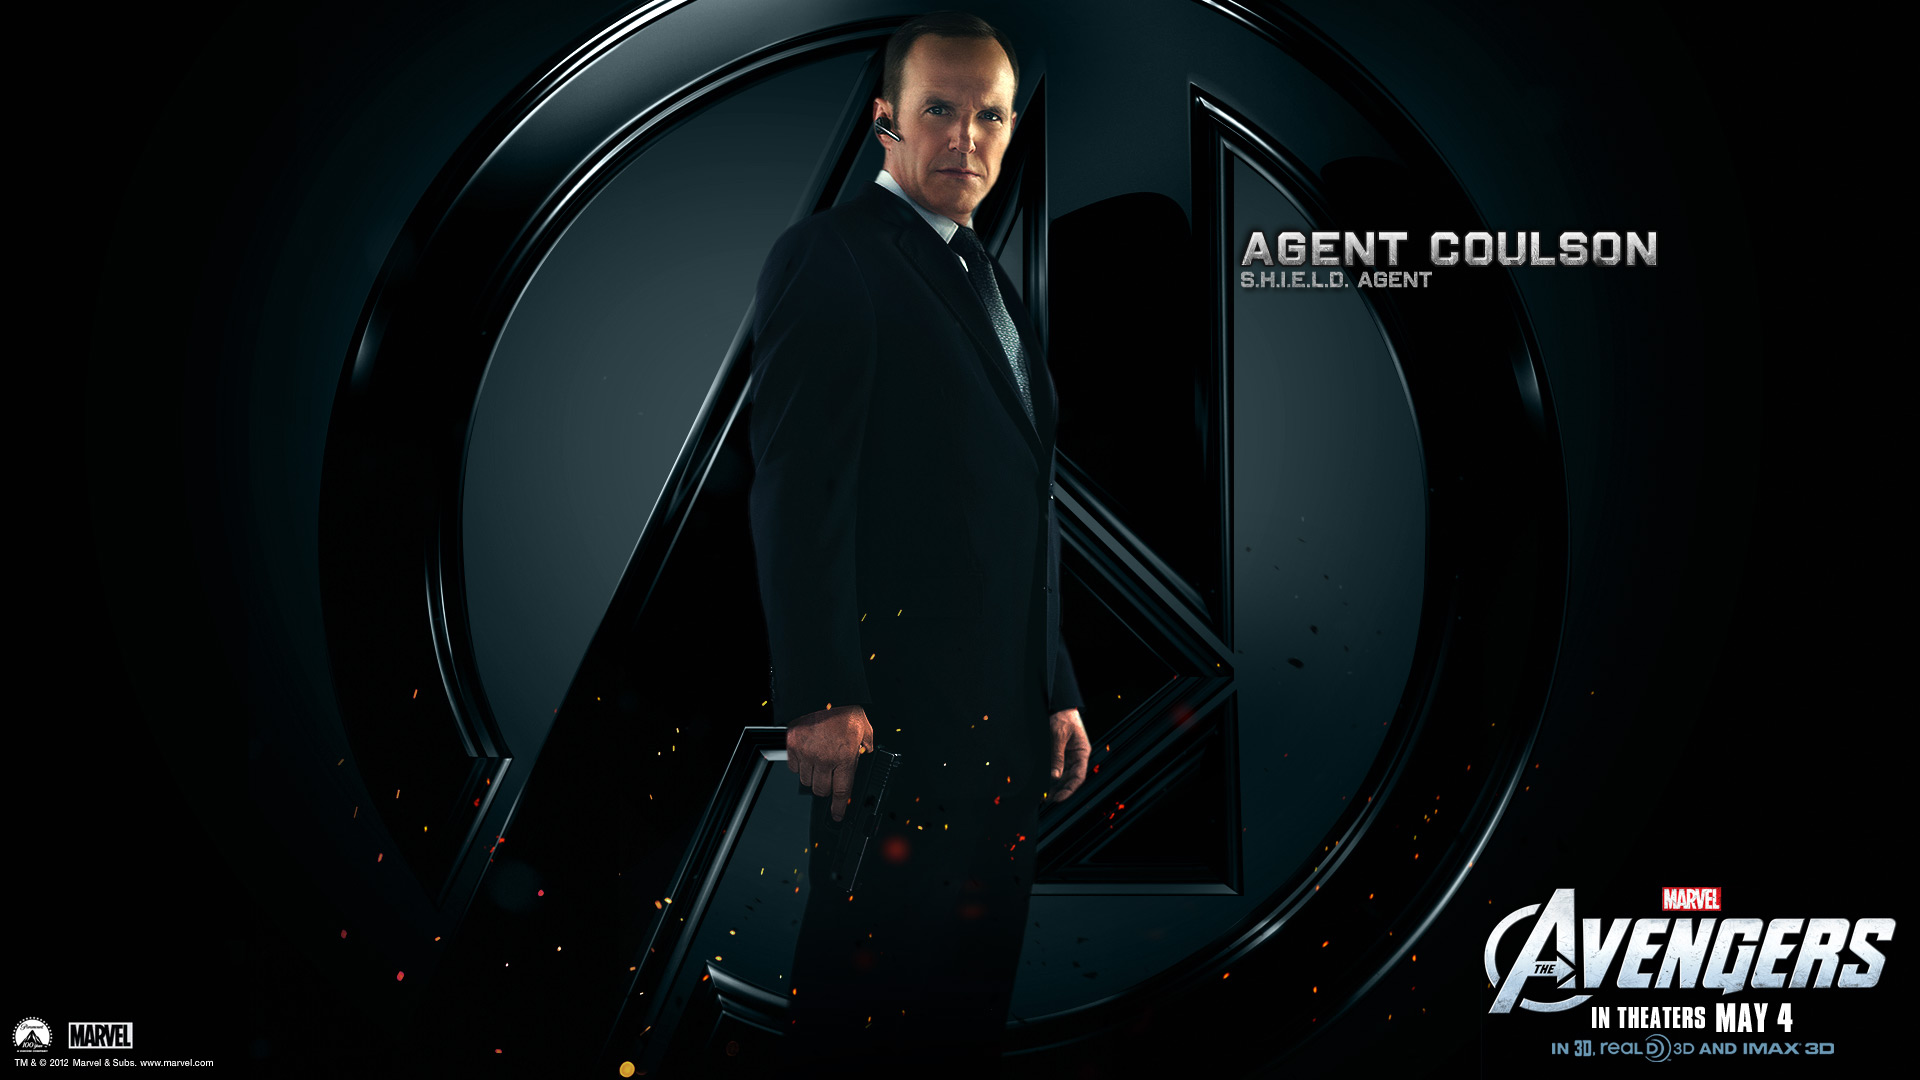 The Avengers Movie 2012 HD Wallpaper Phil Coulson Shield Agent 21 1920x1080